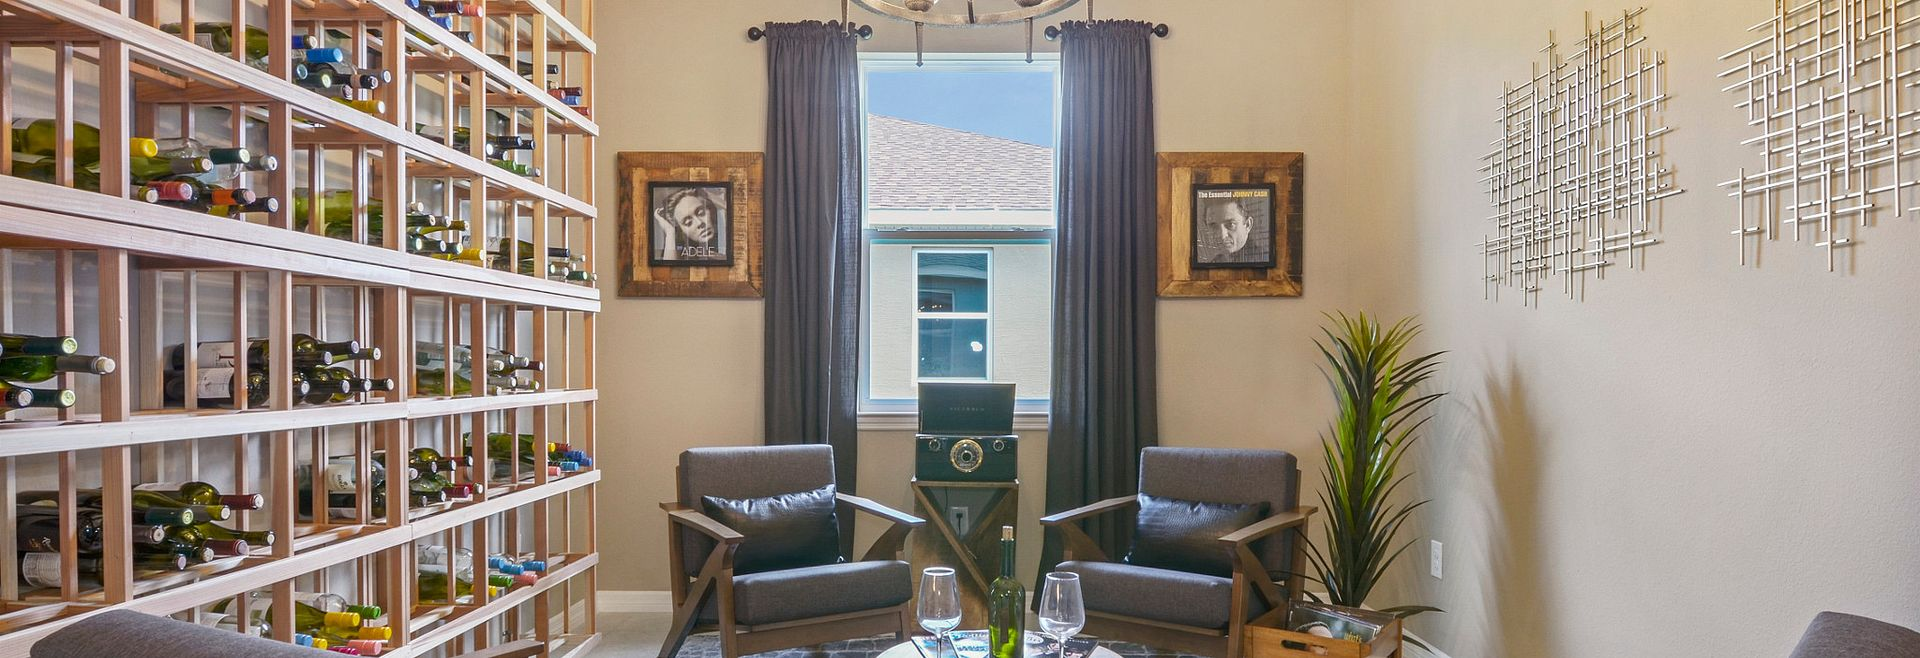 Trilogy at Ocala Preserve Excite Model Home Den